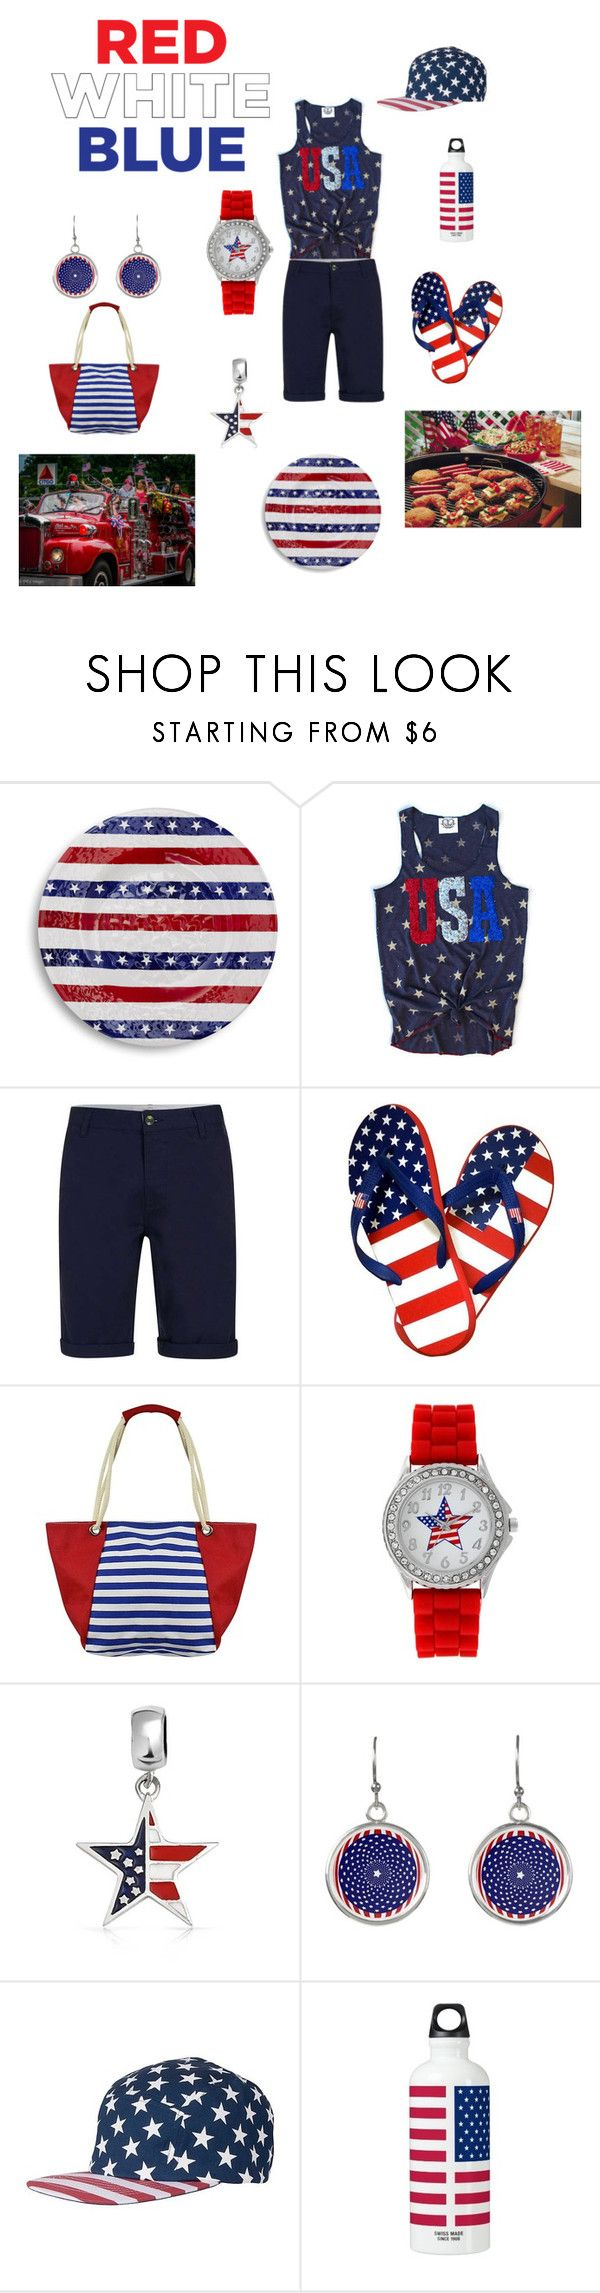 """""""Happy Independence Day!"""" by denise-grimes ❤ liked on Polyvore featuring Sur La Table, Kim Rogers, Bling Jewelry and Wemco"""